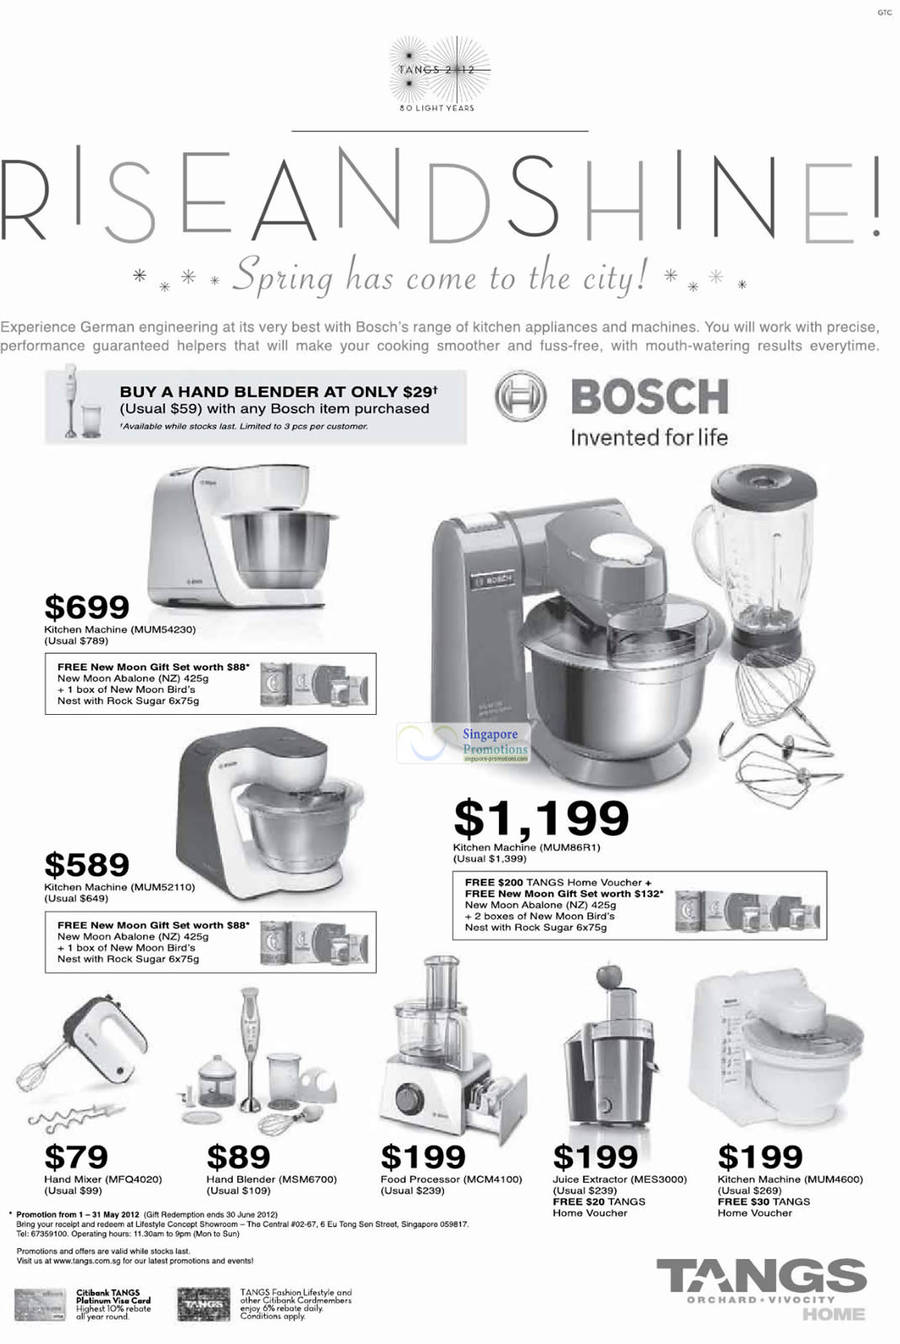 Bosch Kitchen Machine MUM54230, Bosch Kitchen Machine MUM52110, Bosch Hand Mixer MFQ4020, Bosch Hand Blender MSM6700, Bosch Food Processor MCM4100, Bosch Juice Extractor MES3000, Bosch Kitchen Machine MUM4600, Bosch Kitchen Machine MUM86R1